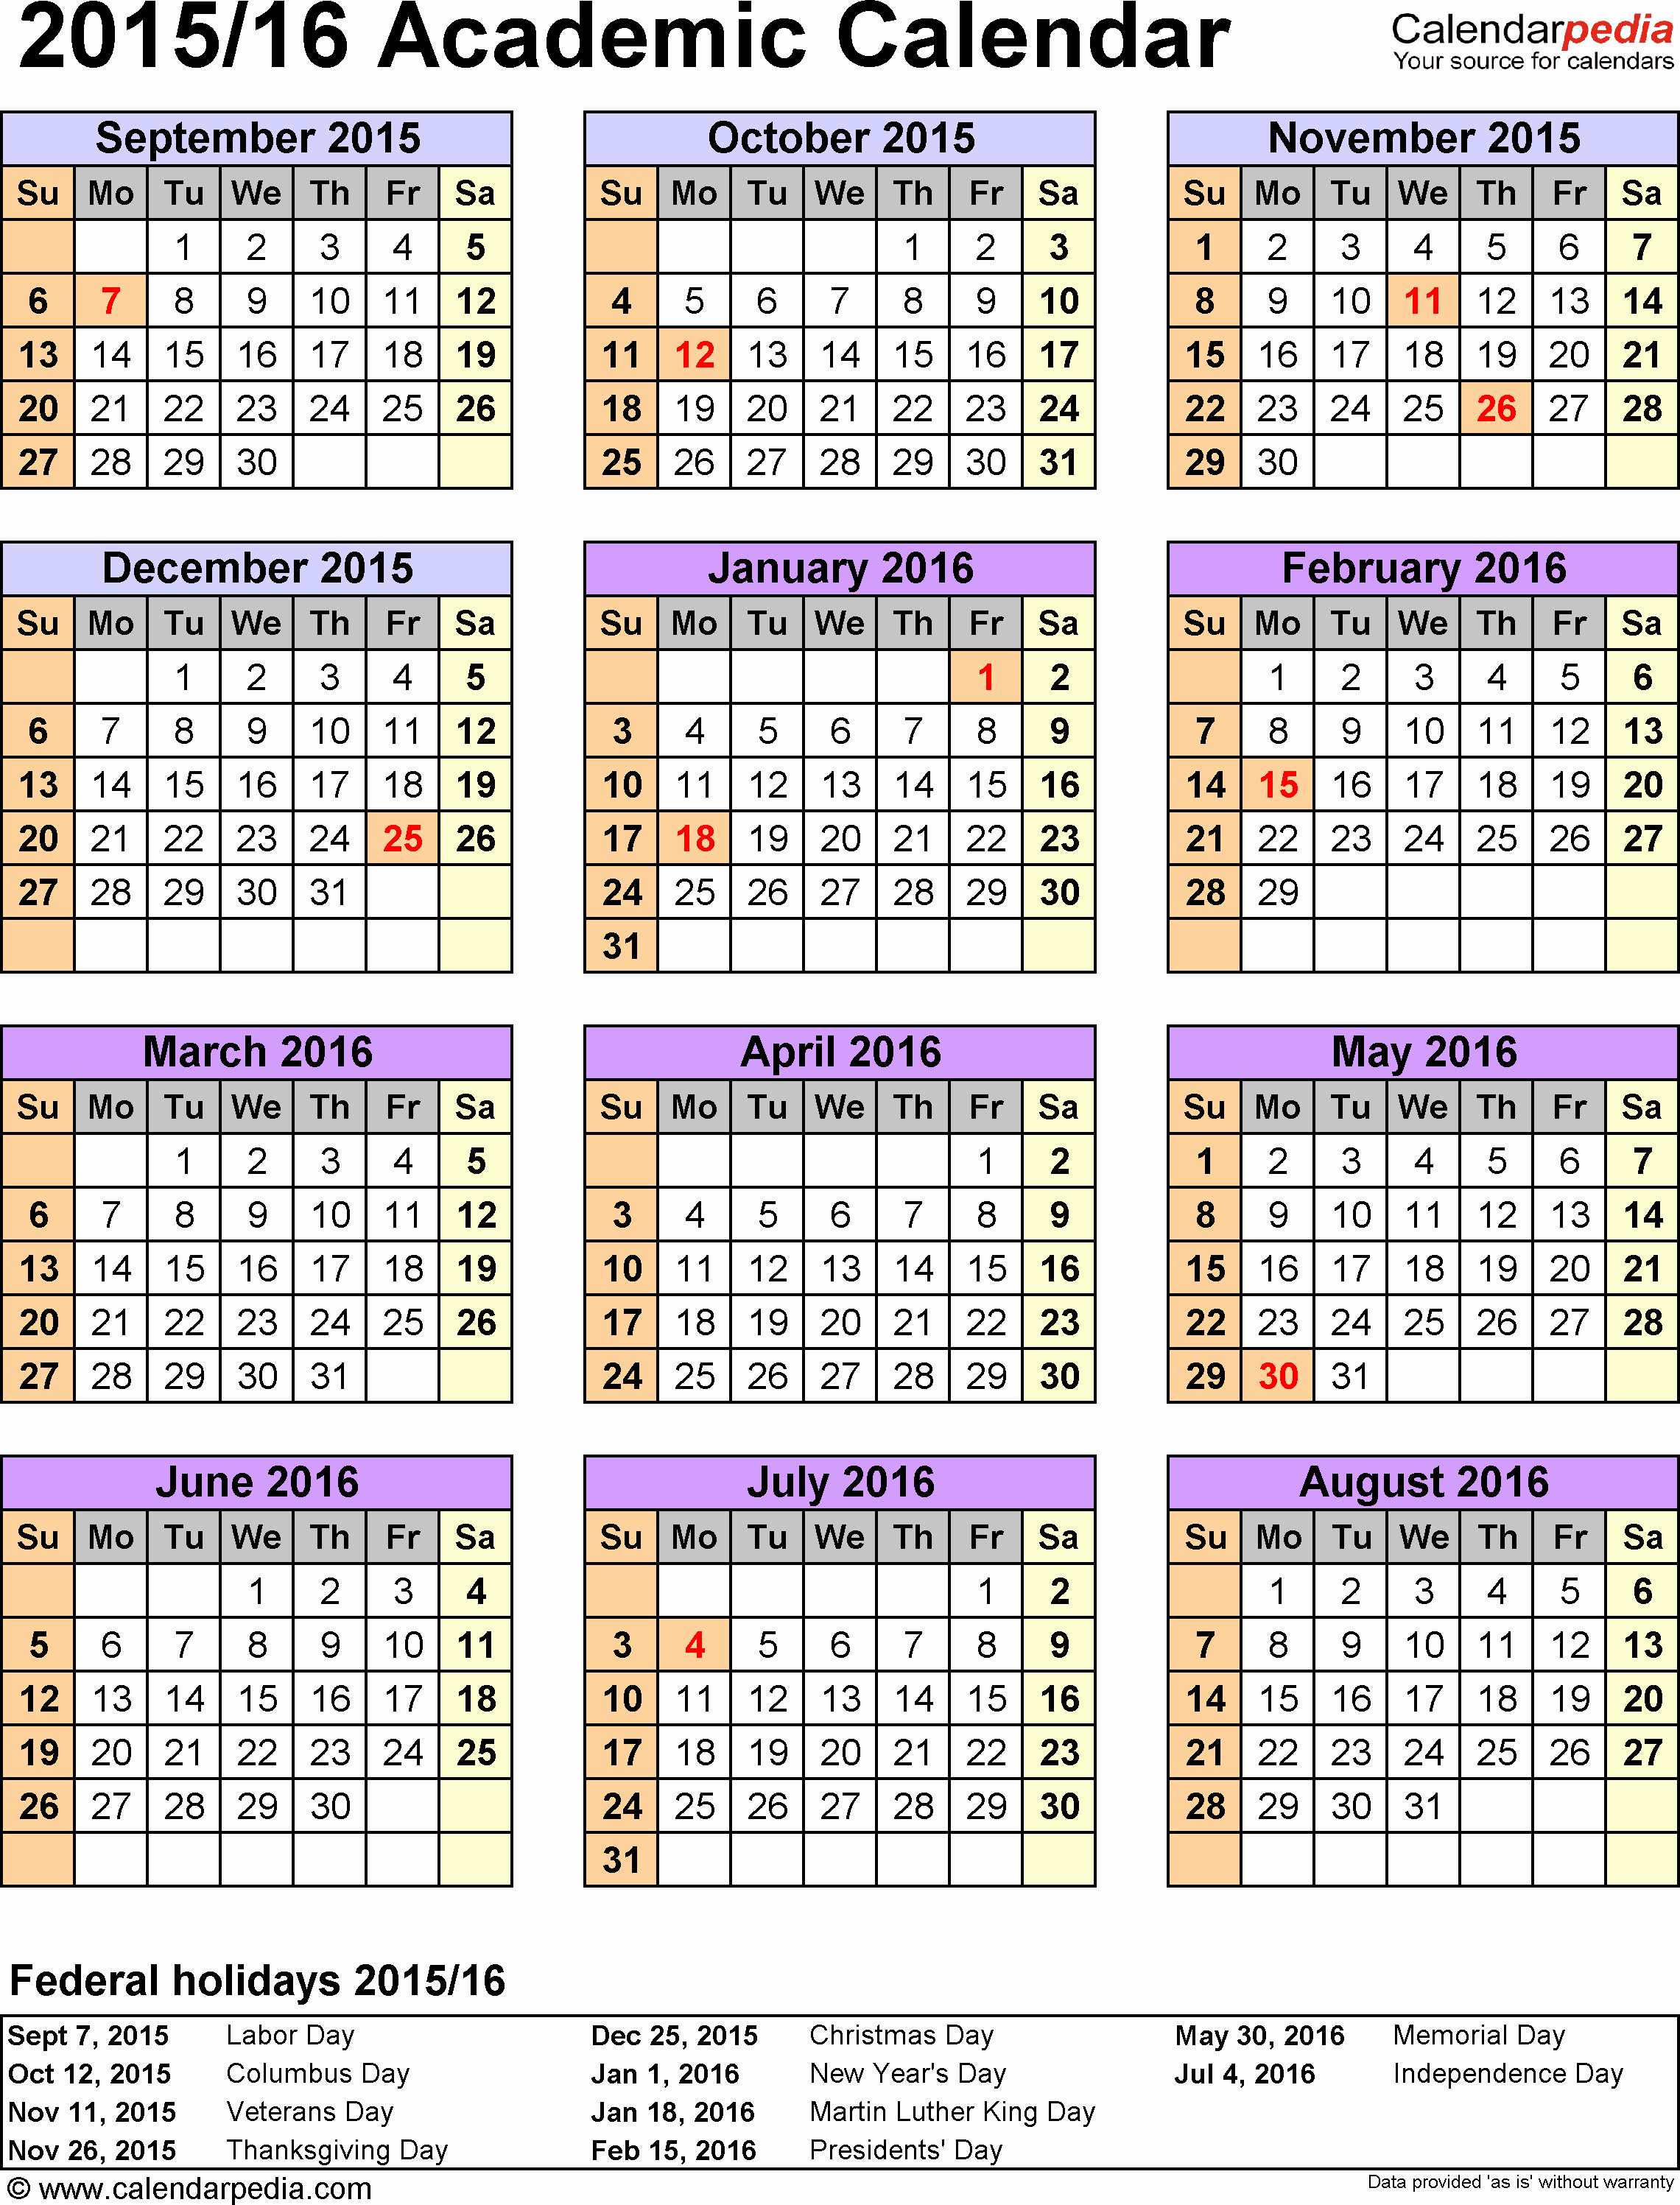 Blank Calendar 2016-17 Beautiful Academic Calendars 2015 2016 as Free Printable Excel Templates